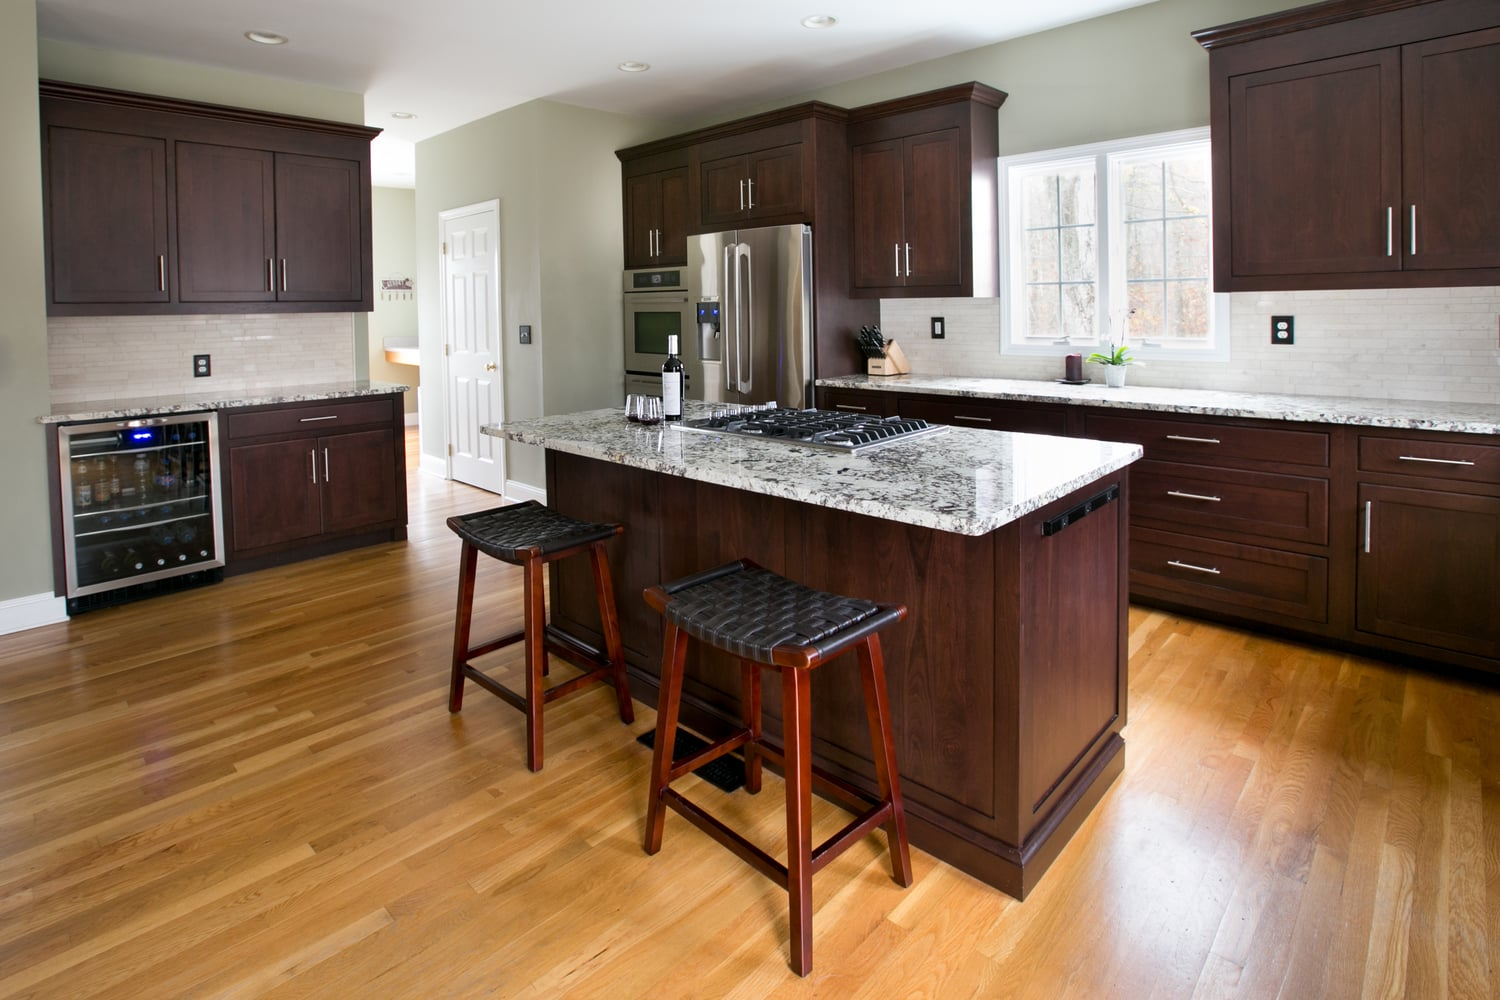 Kitchen Design Ct Impressive Ackley Cabinet Llc Inspiration Design